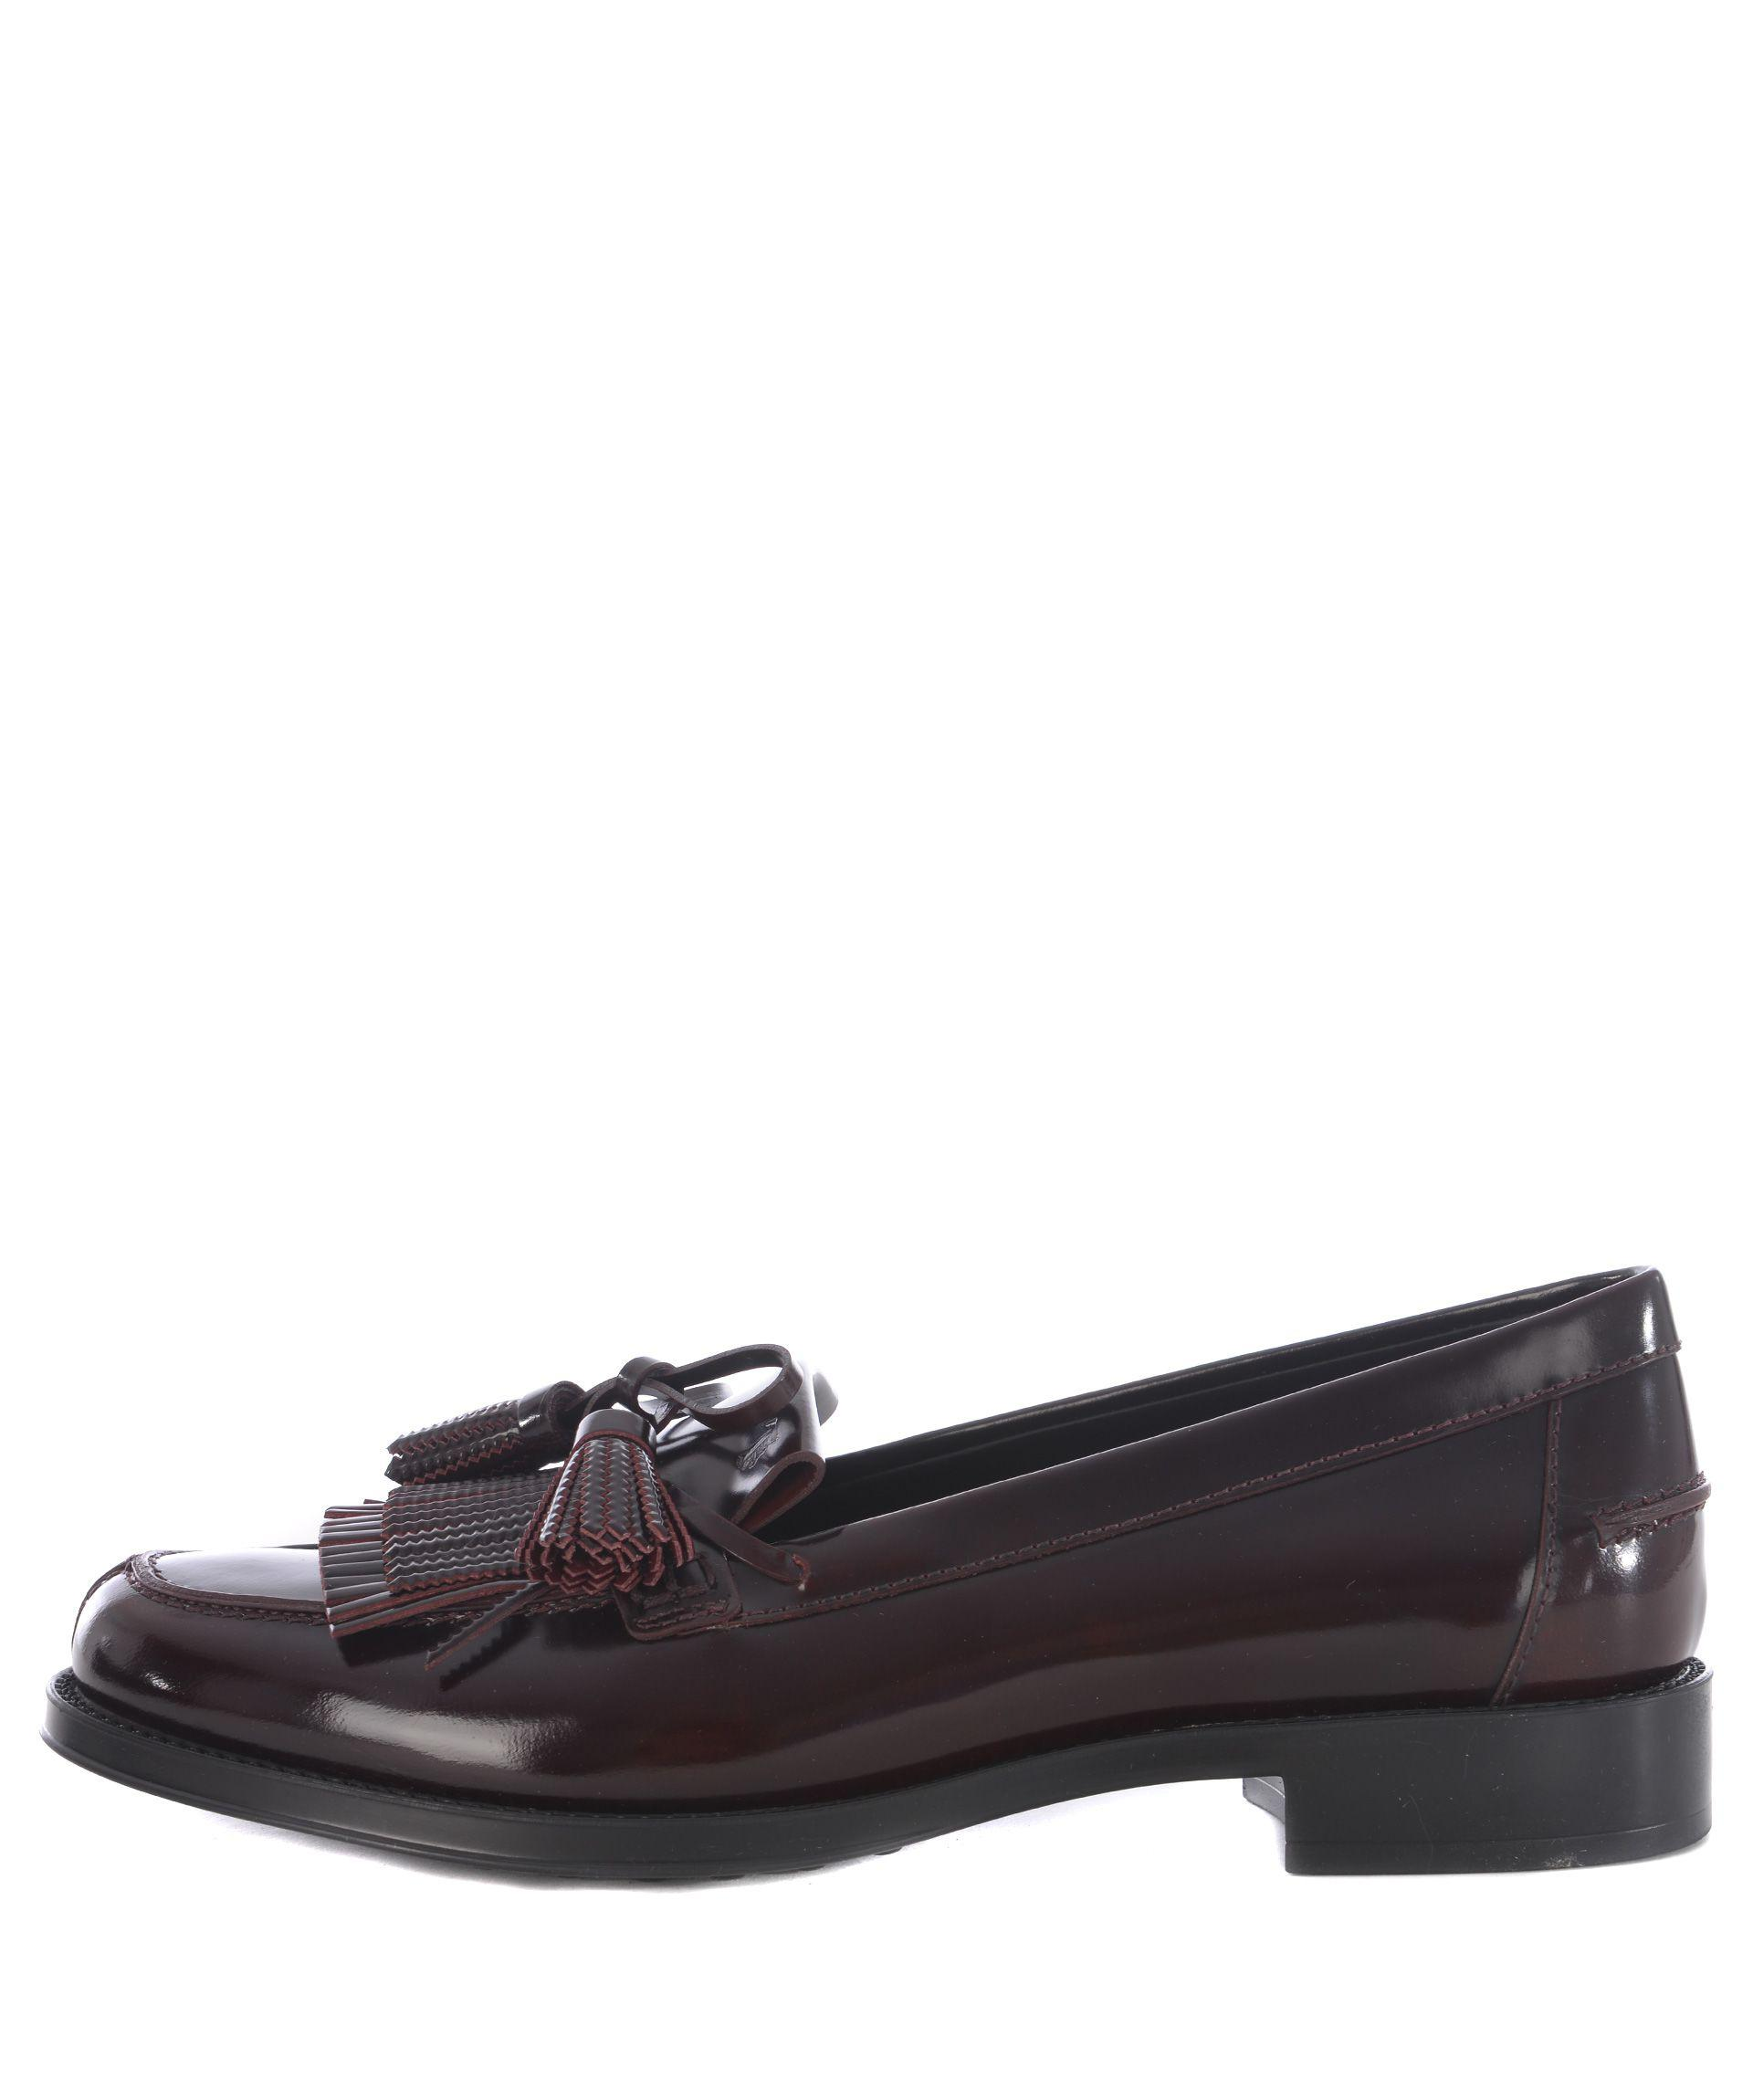 Tod's Fringed Tassel Loafer In Vinaccio